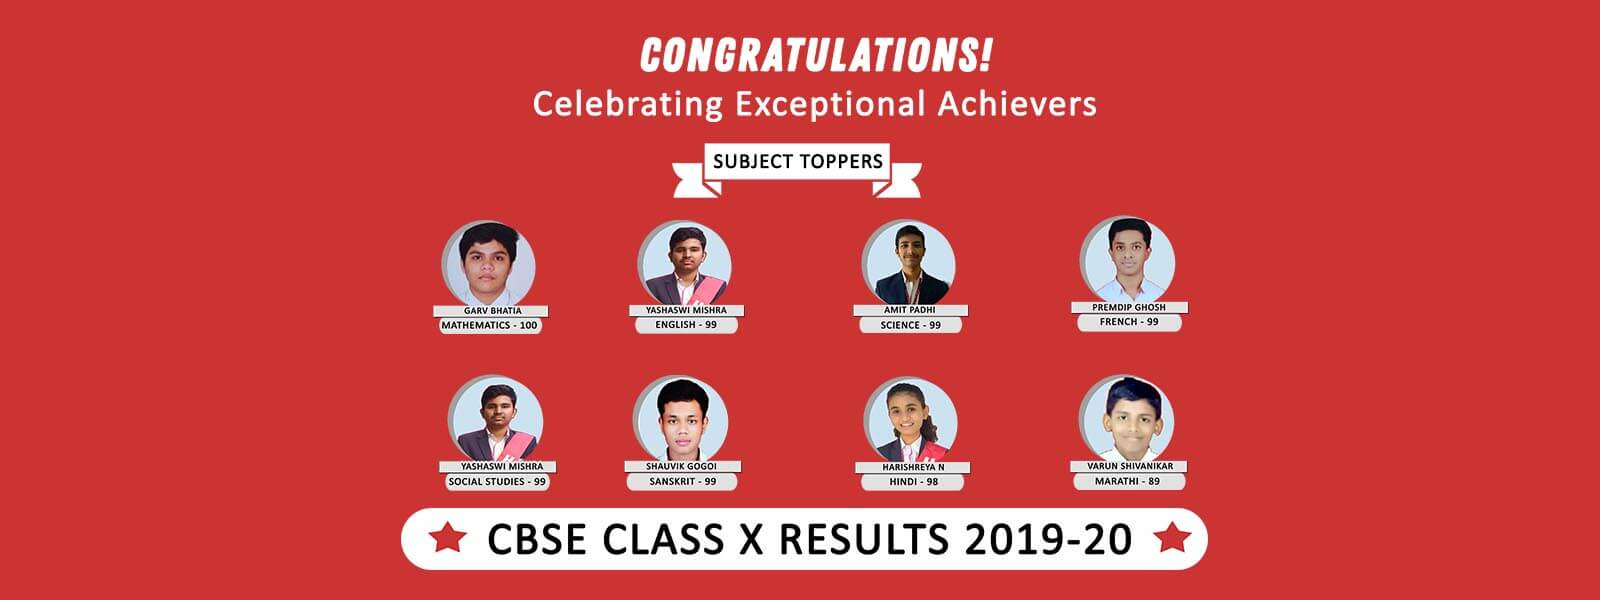 CBSE Class 10 Subject Toppers